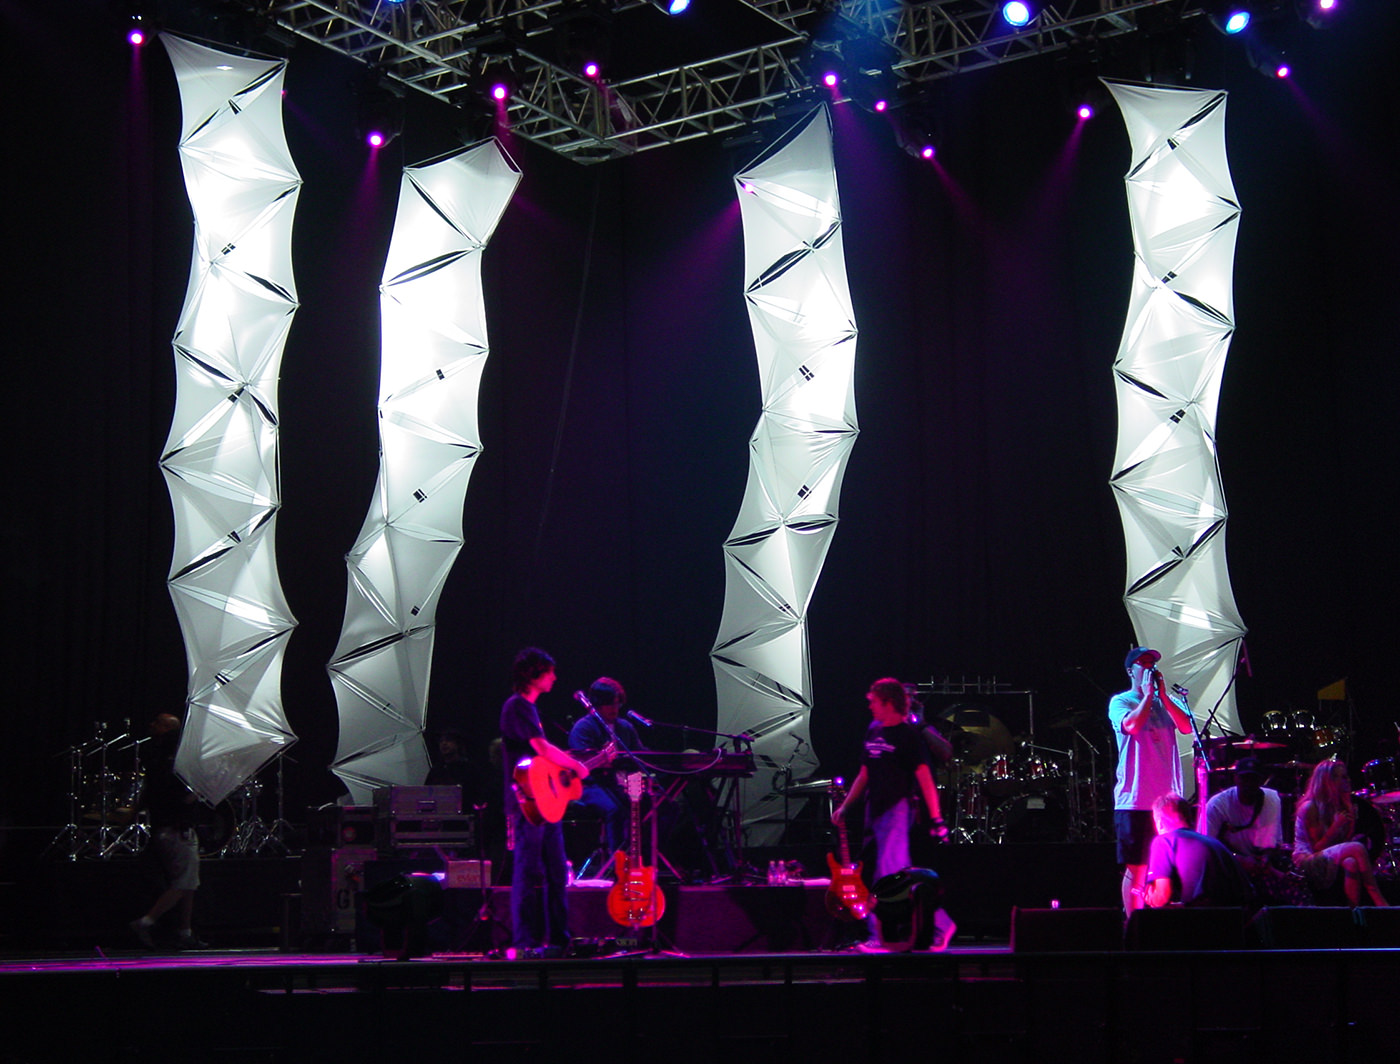 FUNKY TETRA COLUMNS ON STAGE